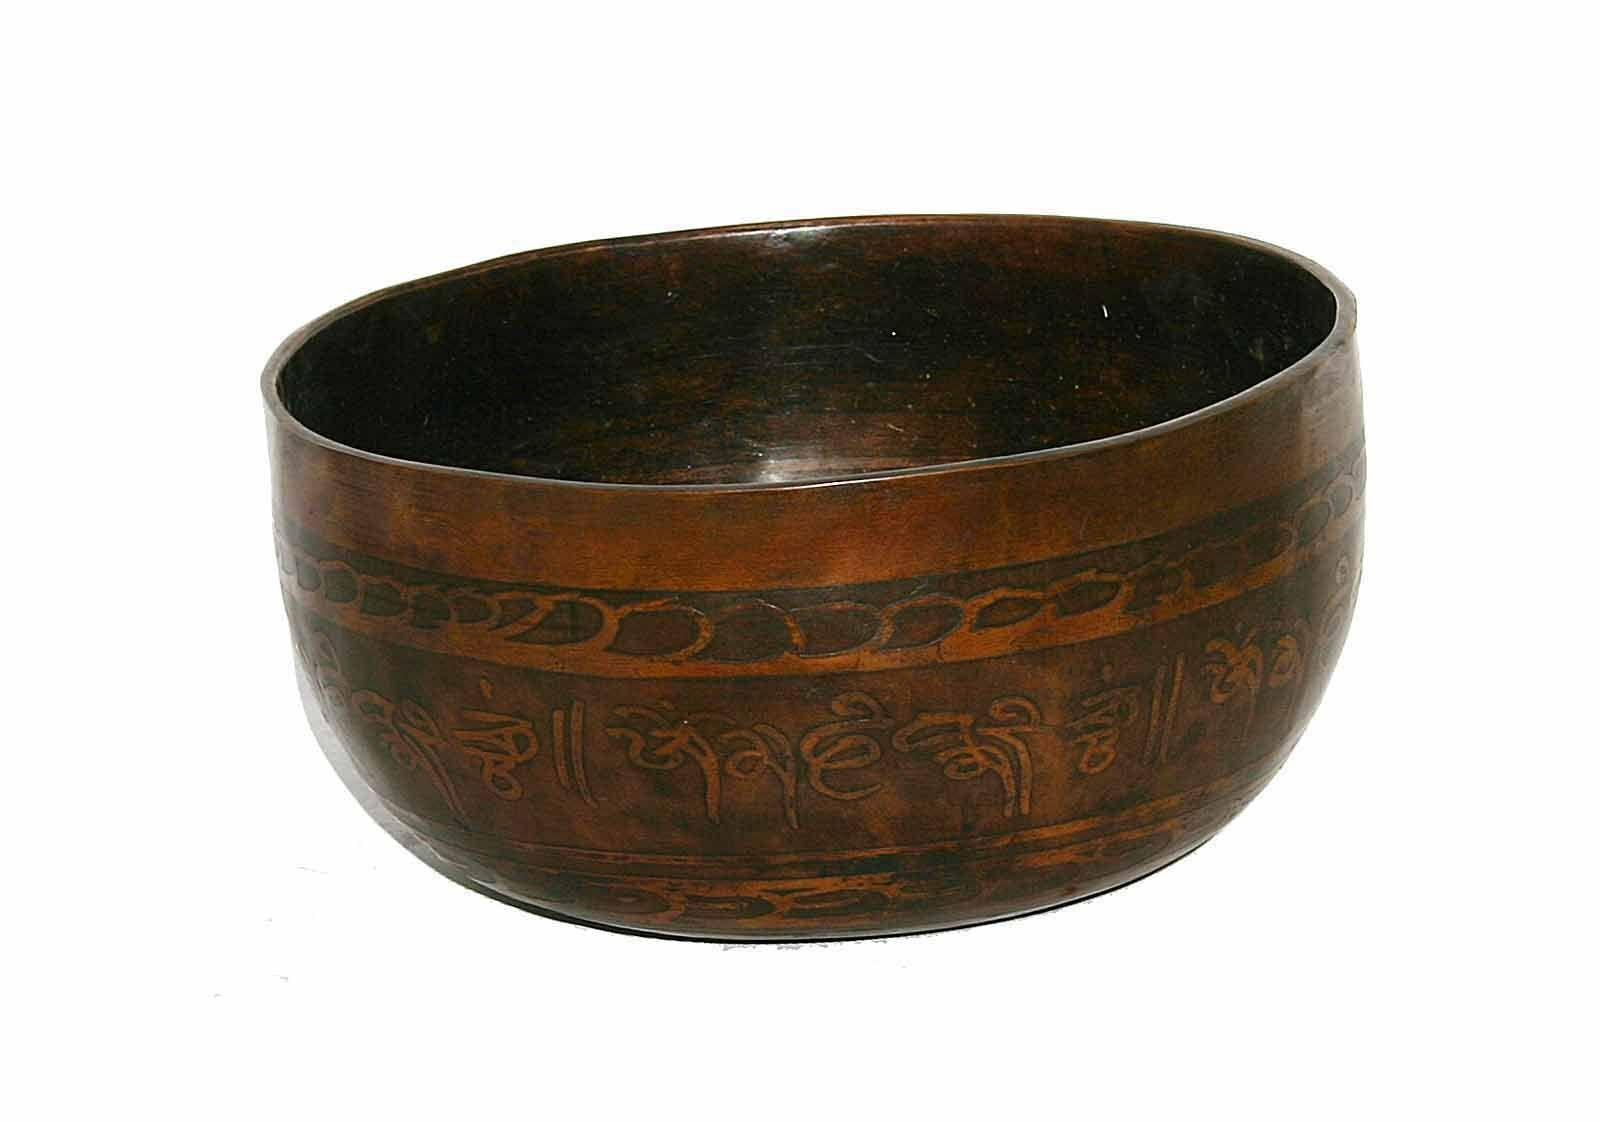 Tibet Klangschale  Singing Bowl   Hörprobe  690g MF2F